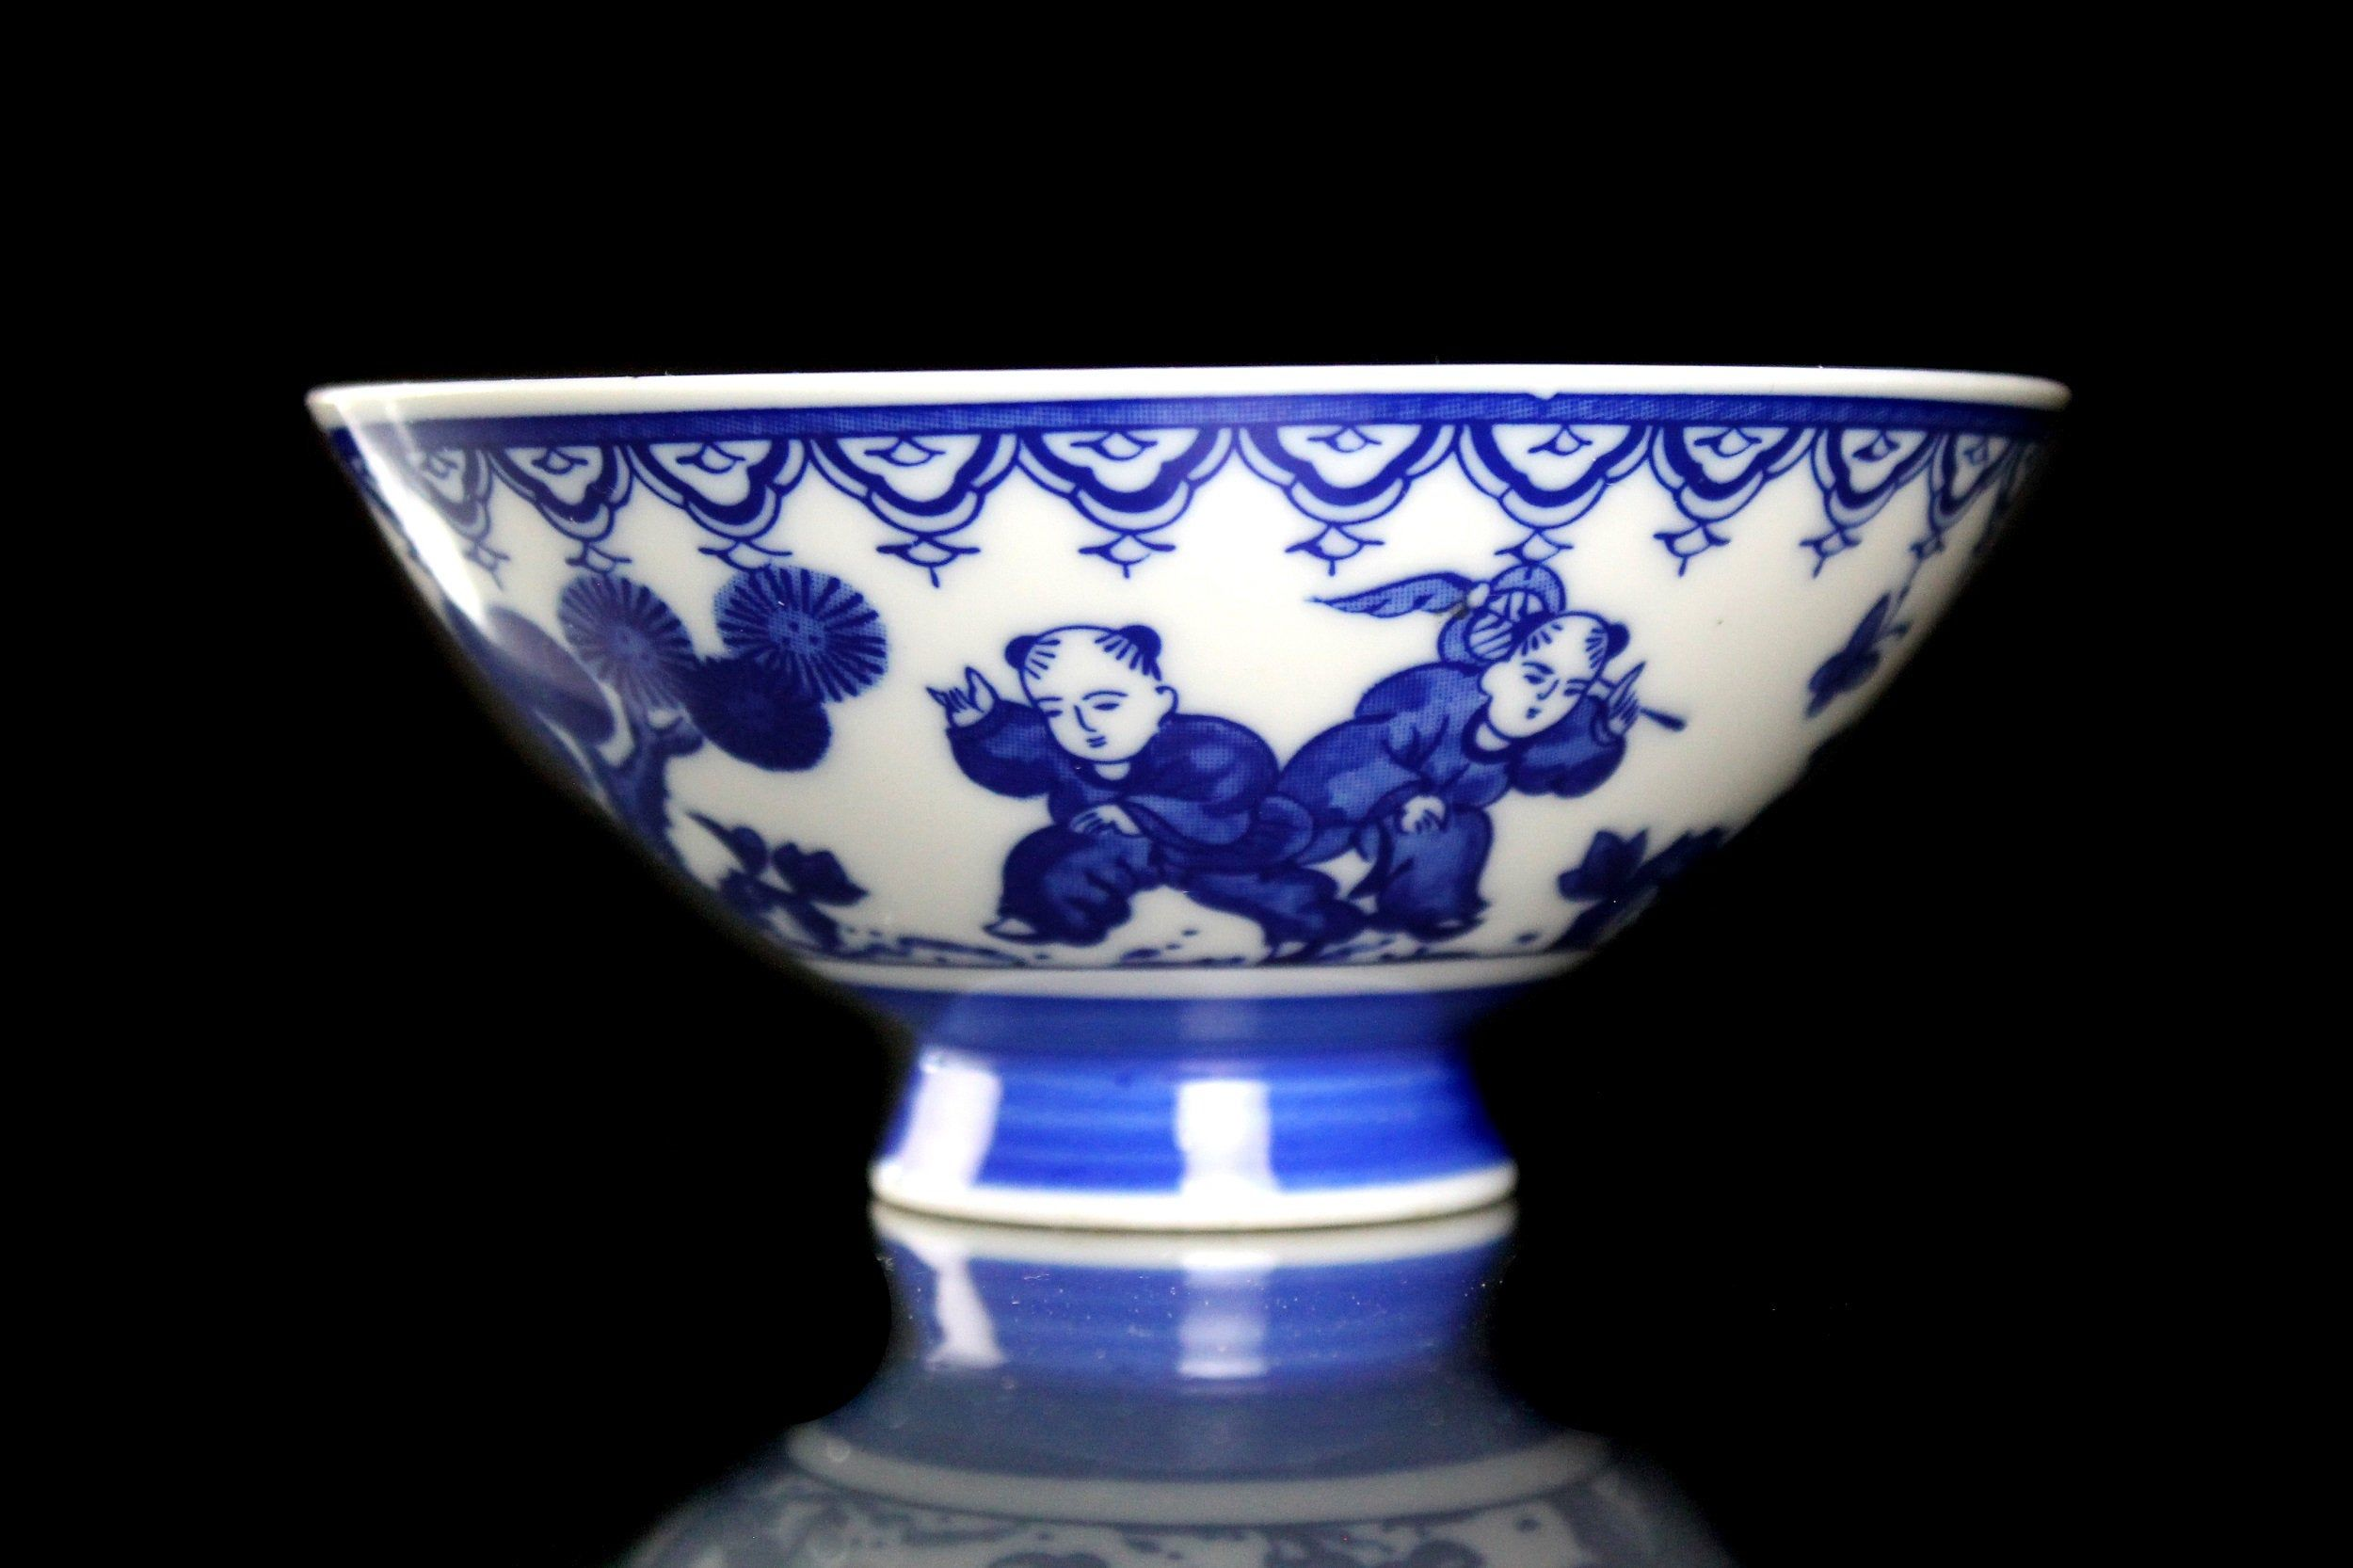 Footed asian rice bowl blue and white porcelain tableware